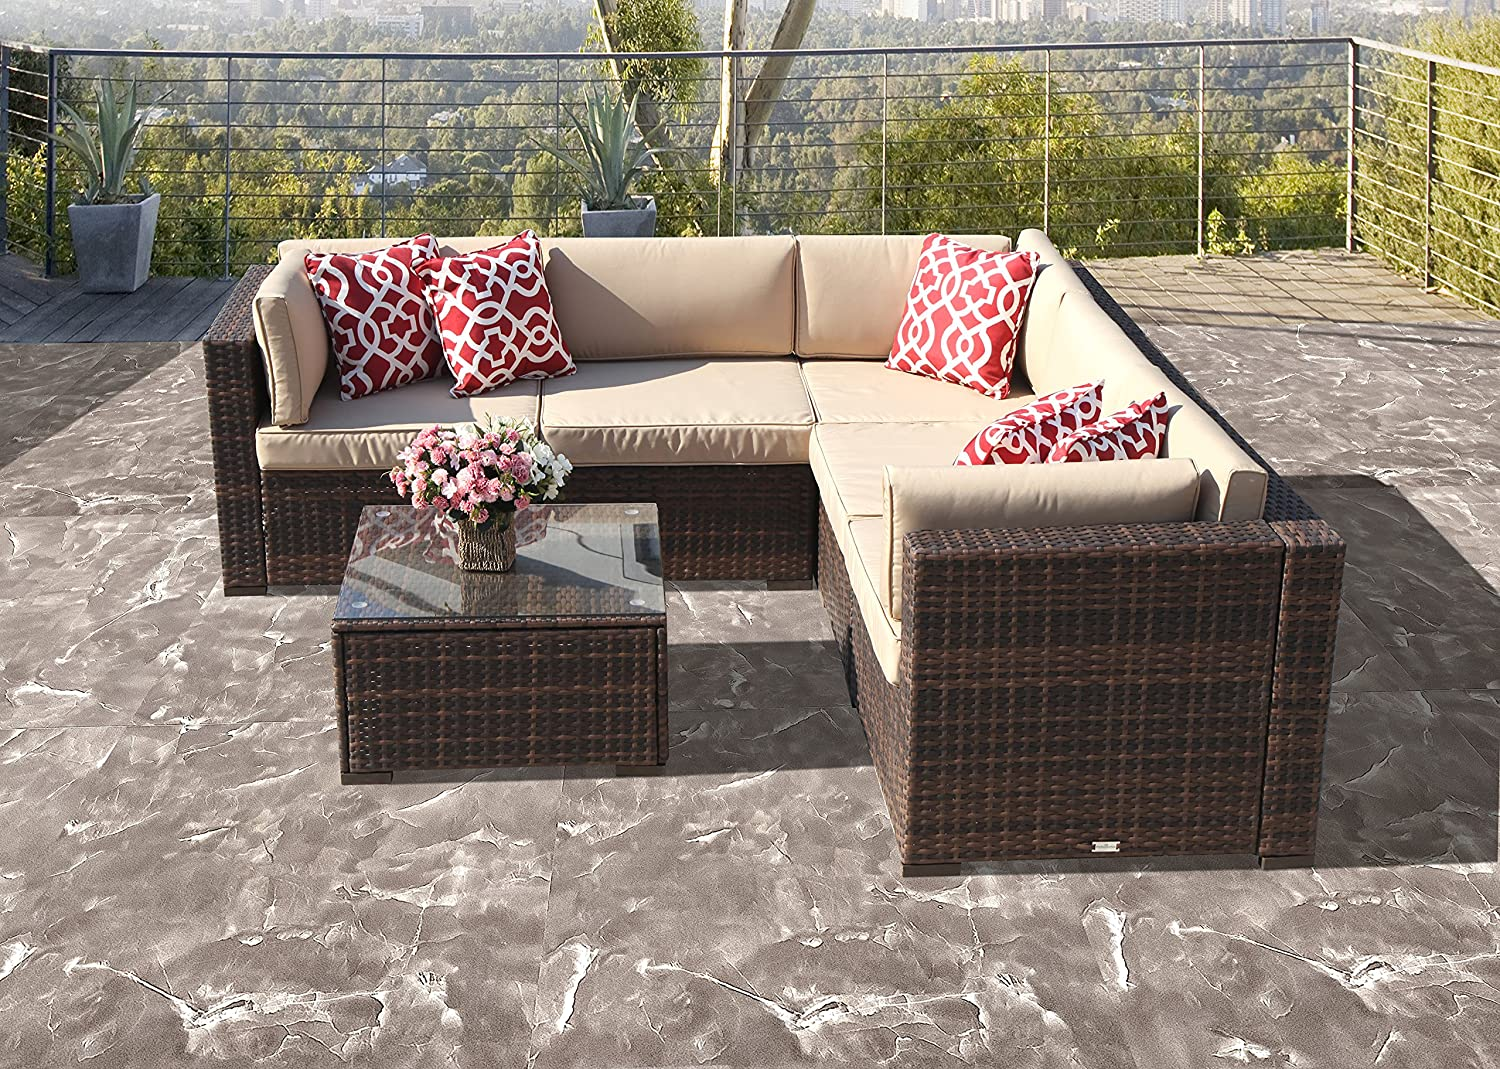 6 Piece Patio Furniture Outdoor Furniture Sectional Set, All Weather PE Brown Wicker Patio Set Sofas with Glass Coffee Table, Steel Frame, Beige Cushions